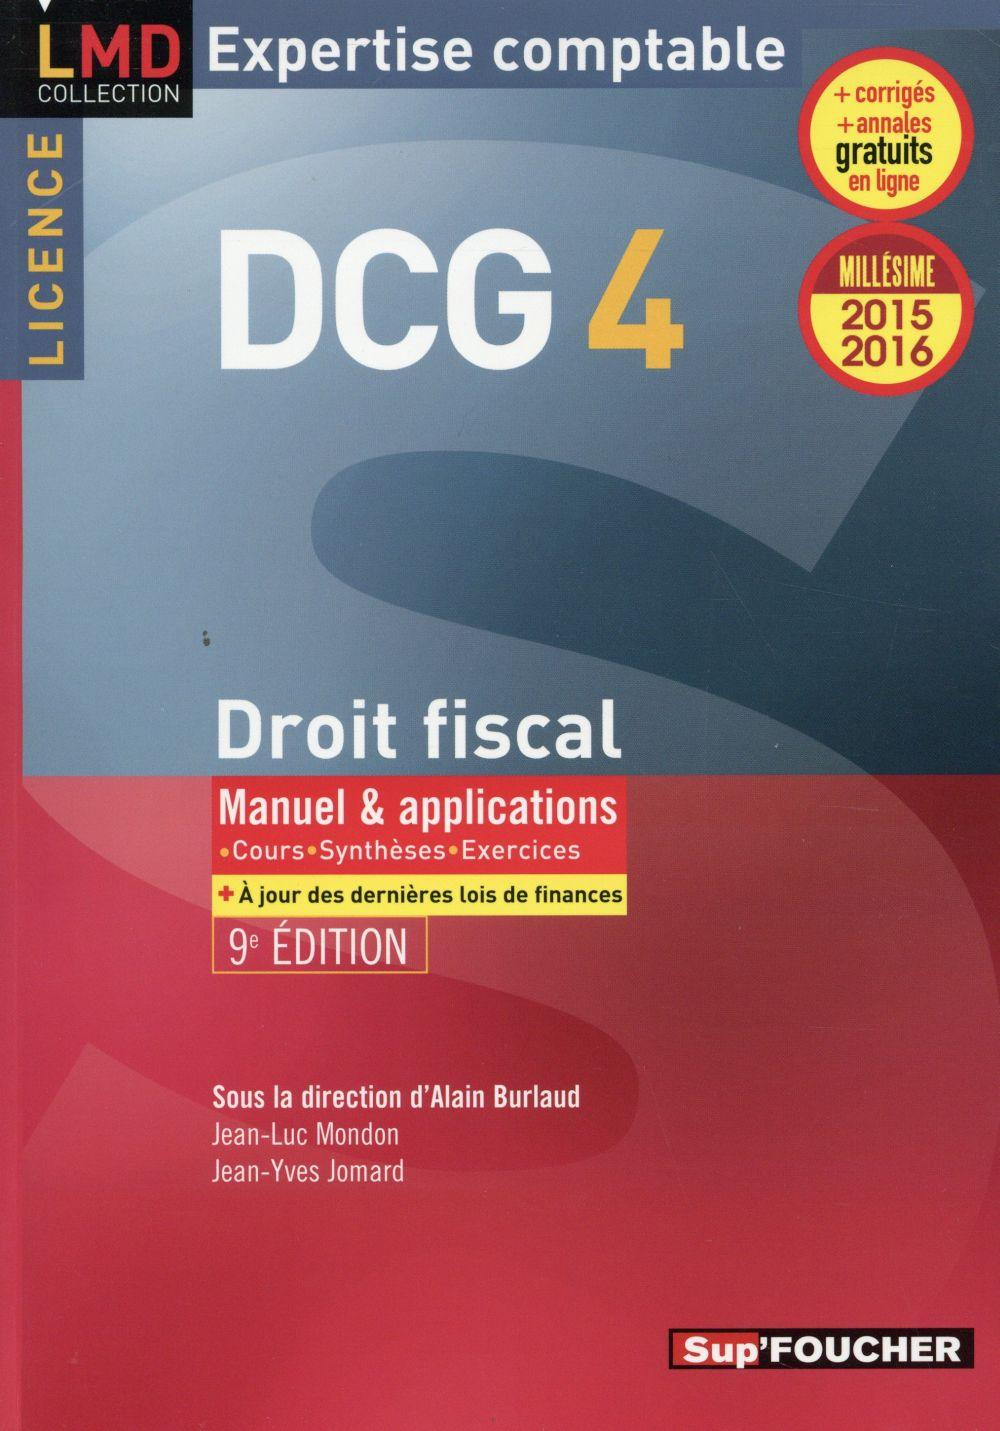 DCG 4 ; droit fiscal ; manuel et applications (édition 2015/2016)  - Alain Burlaud  - Jean-Yves Jomard  - Jean-Luc Mondon